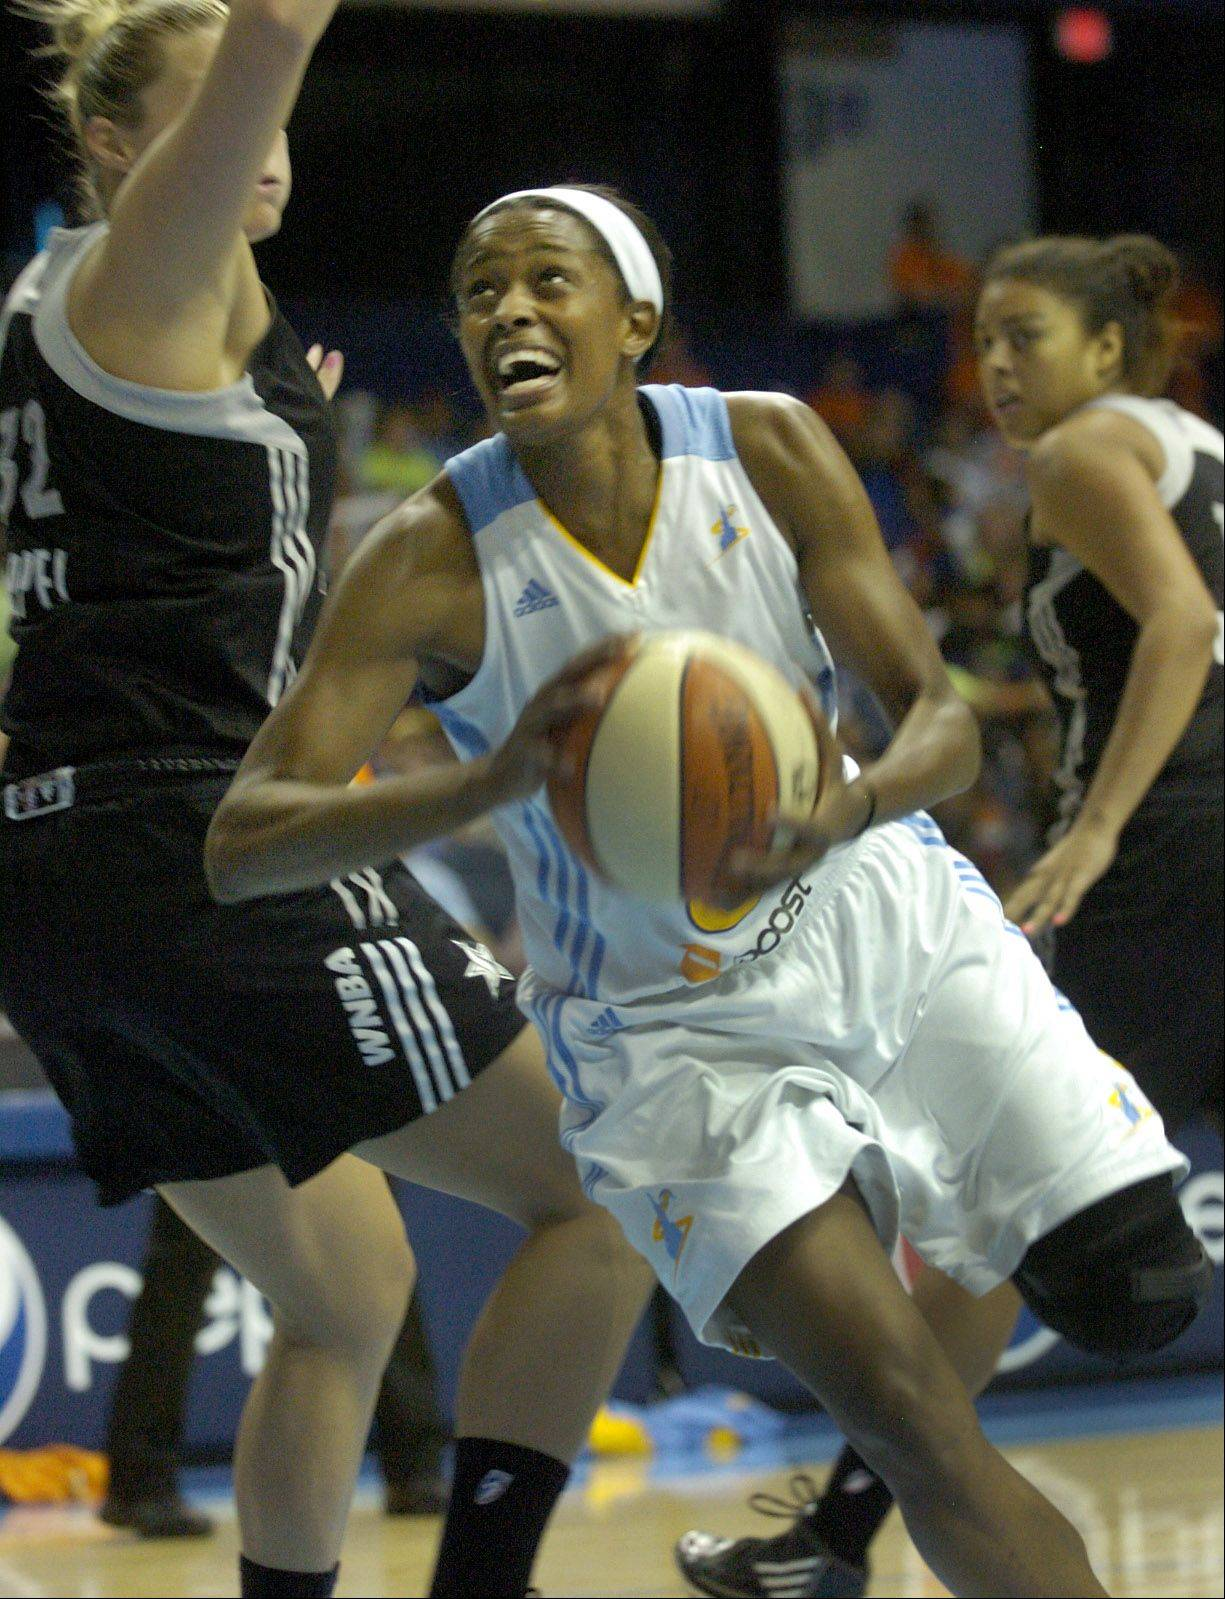 The Sky's Swin Cash drives past San Antonio's Jayne Appel, during Chicago Sky vs. San Antonio Silver Stars WNBA action.